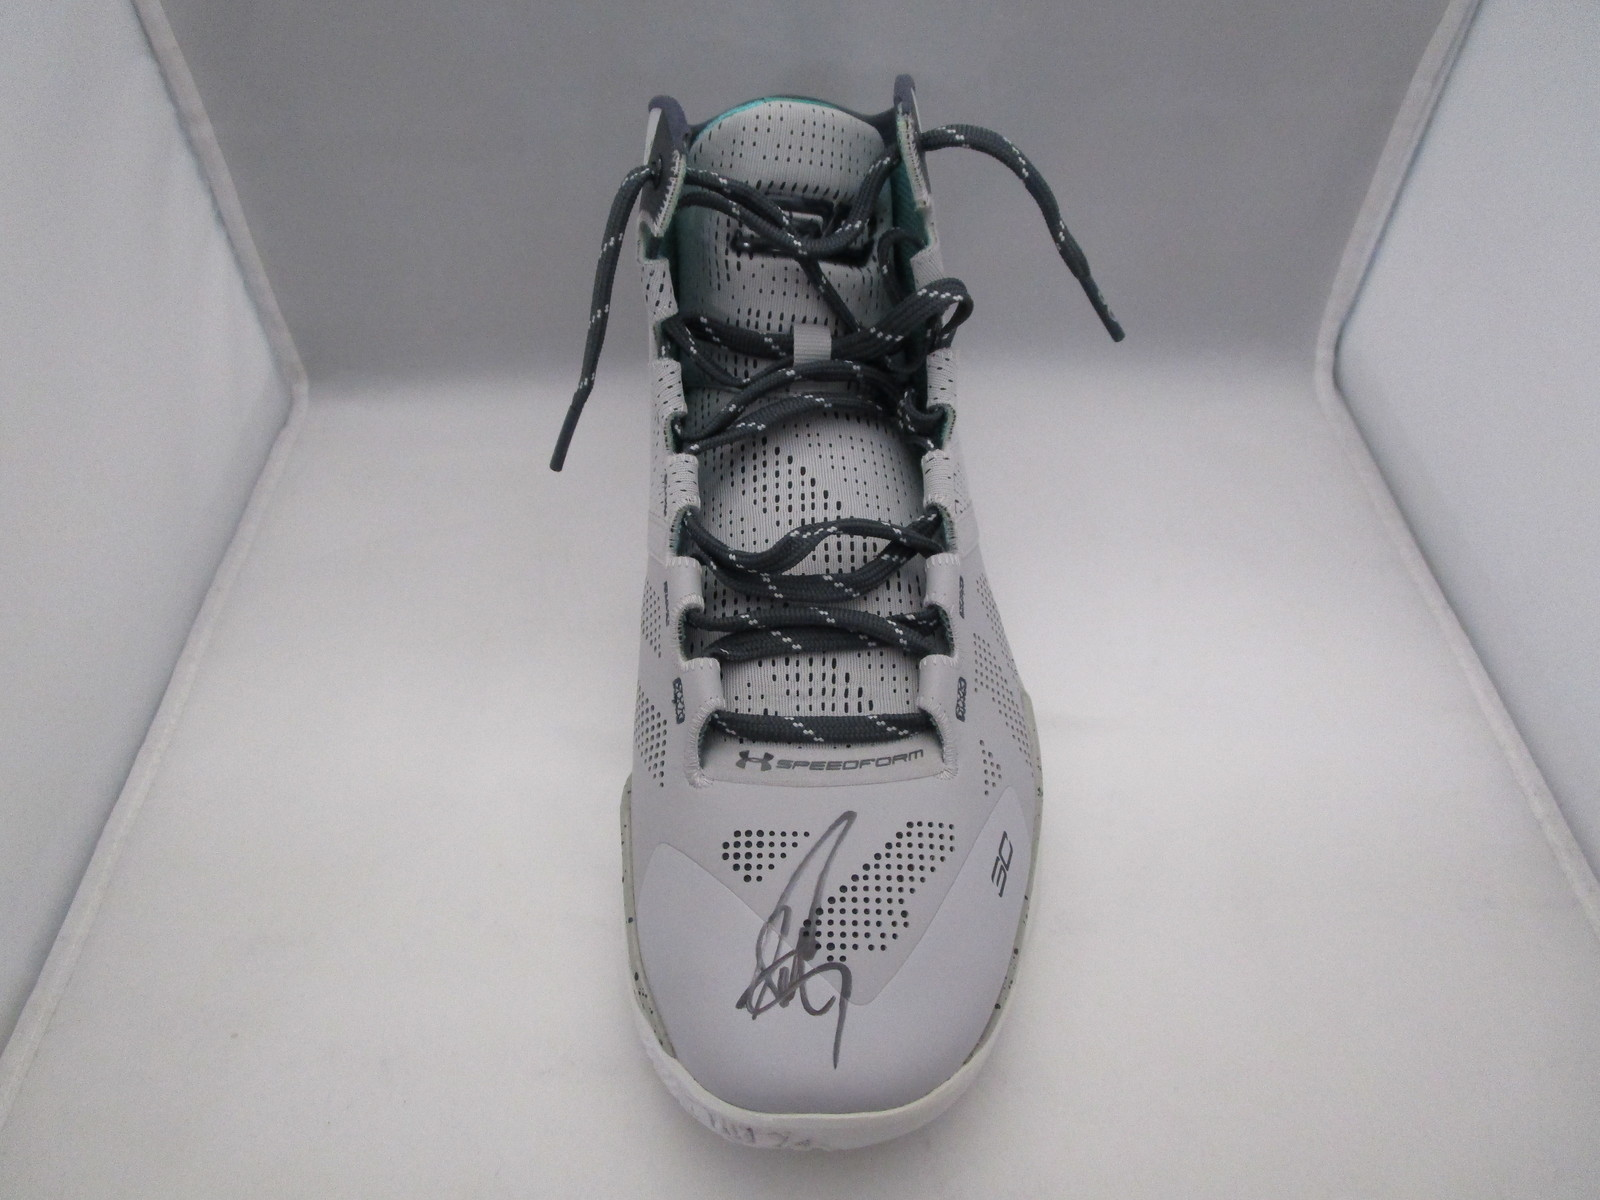 STEPHEN CURRY / AUTOGRAPHED UNDER ARMOUR PLAYER MODEL GREY SNEAKER / JSA COA